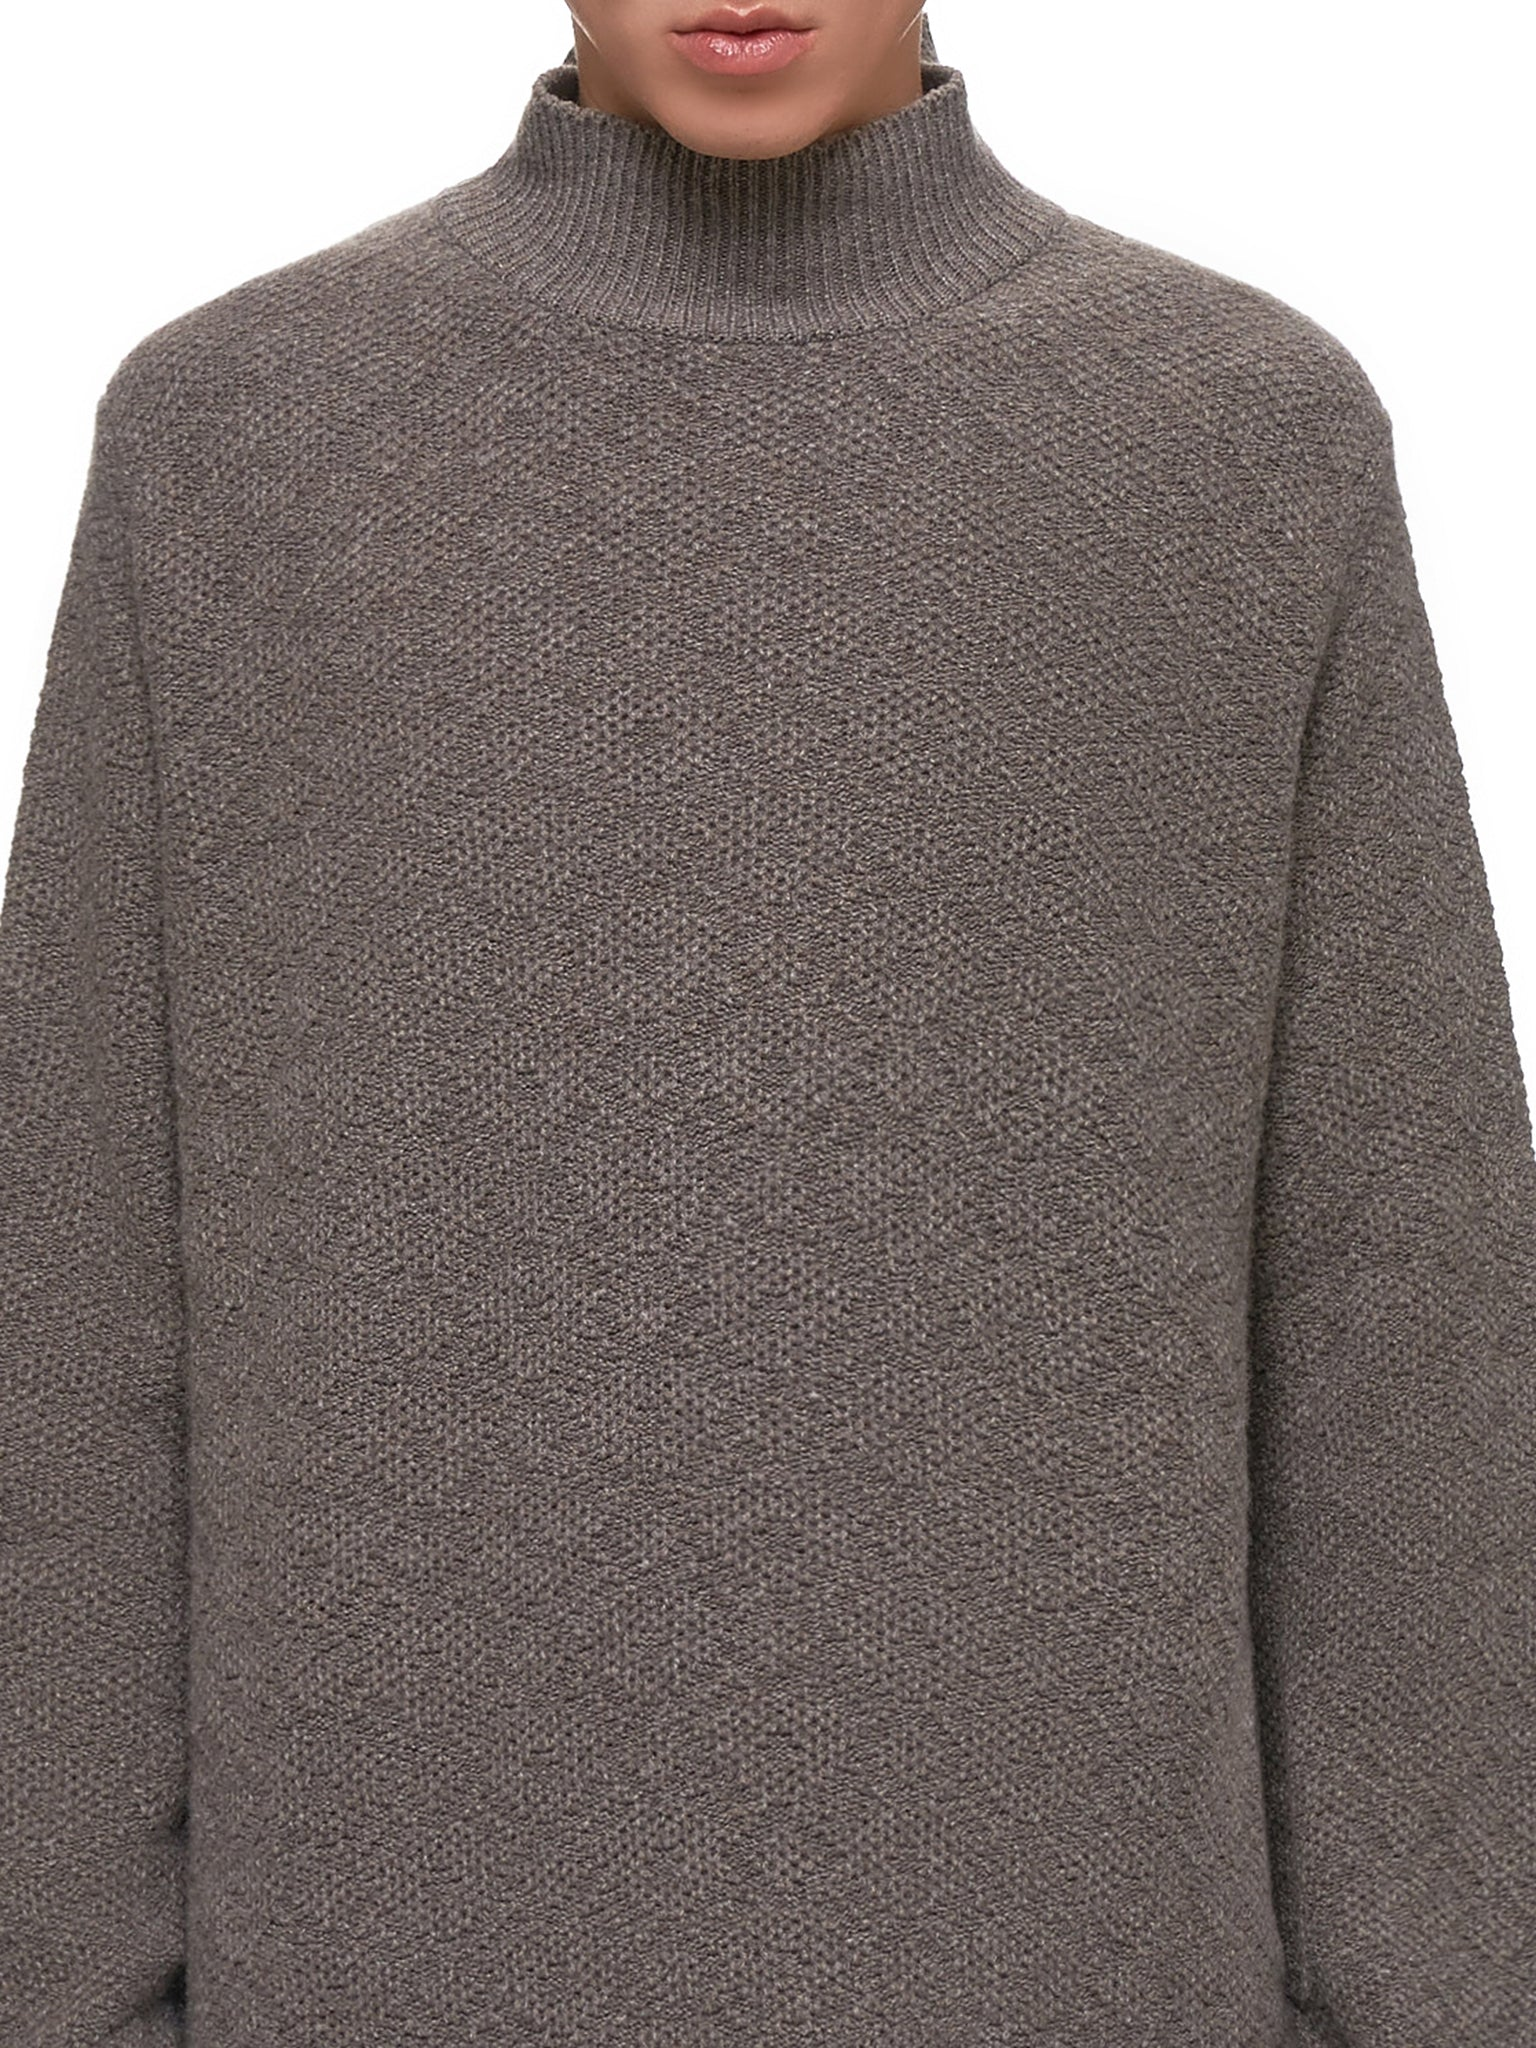 Knitted Sweater (S13008-SMOCKEY)